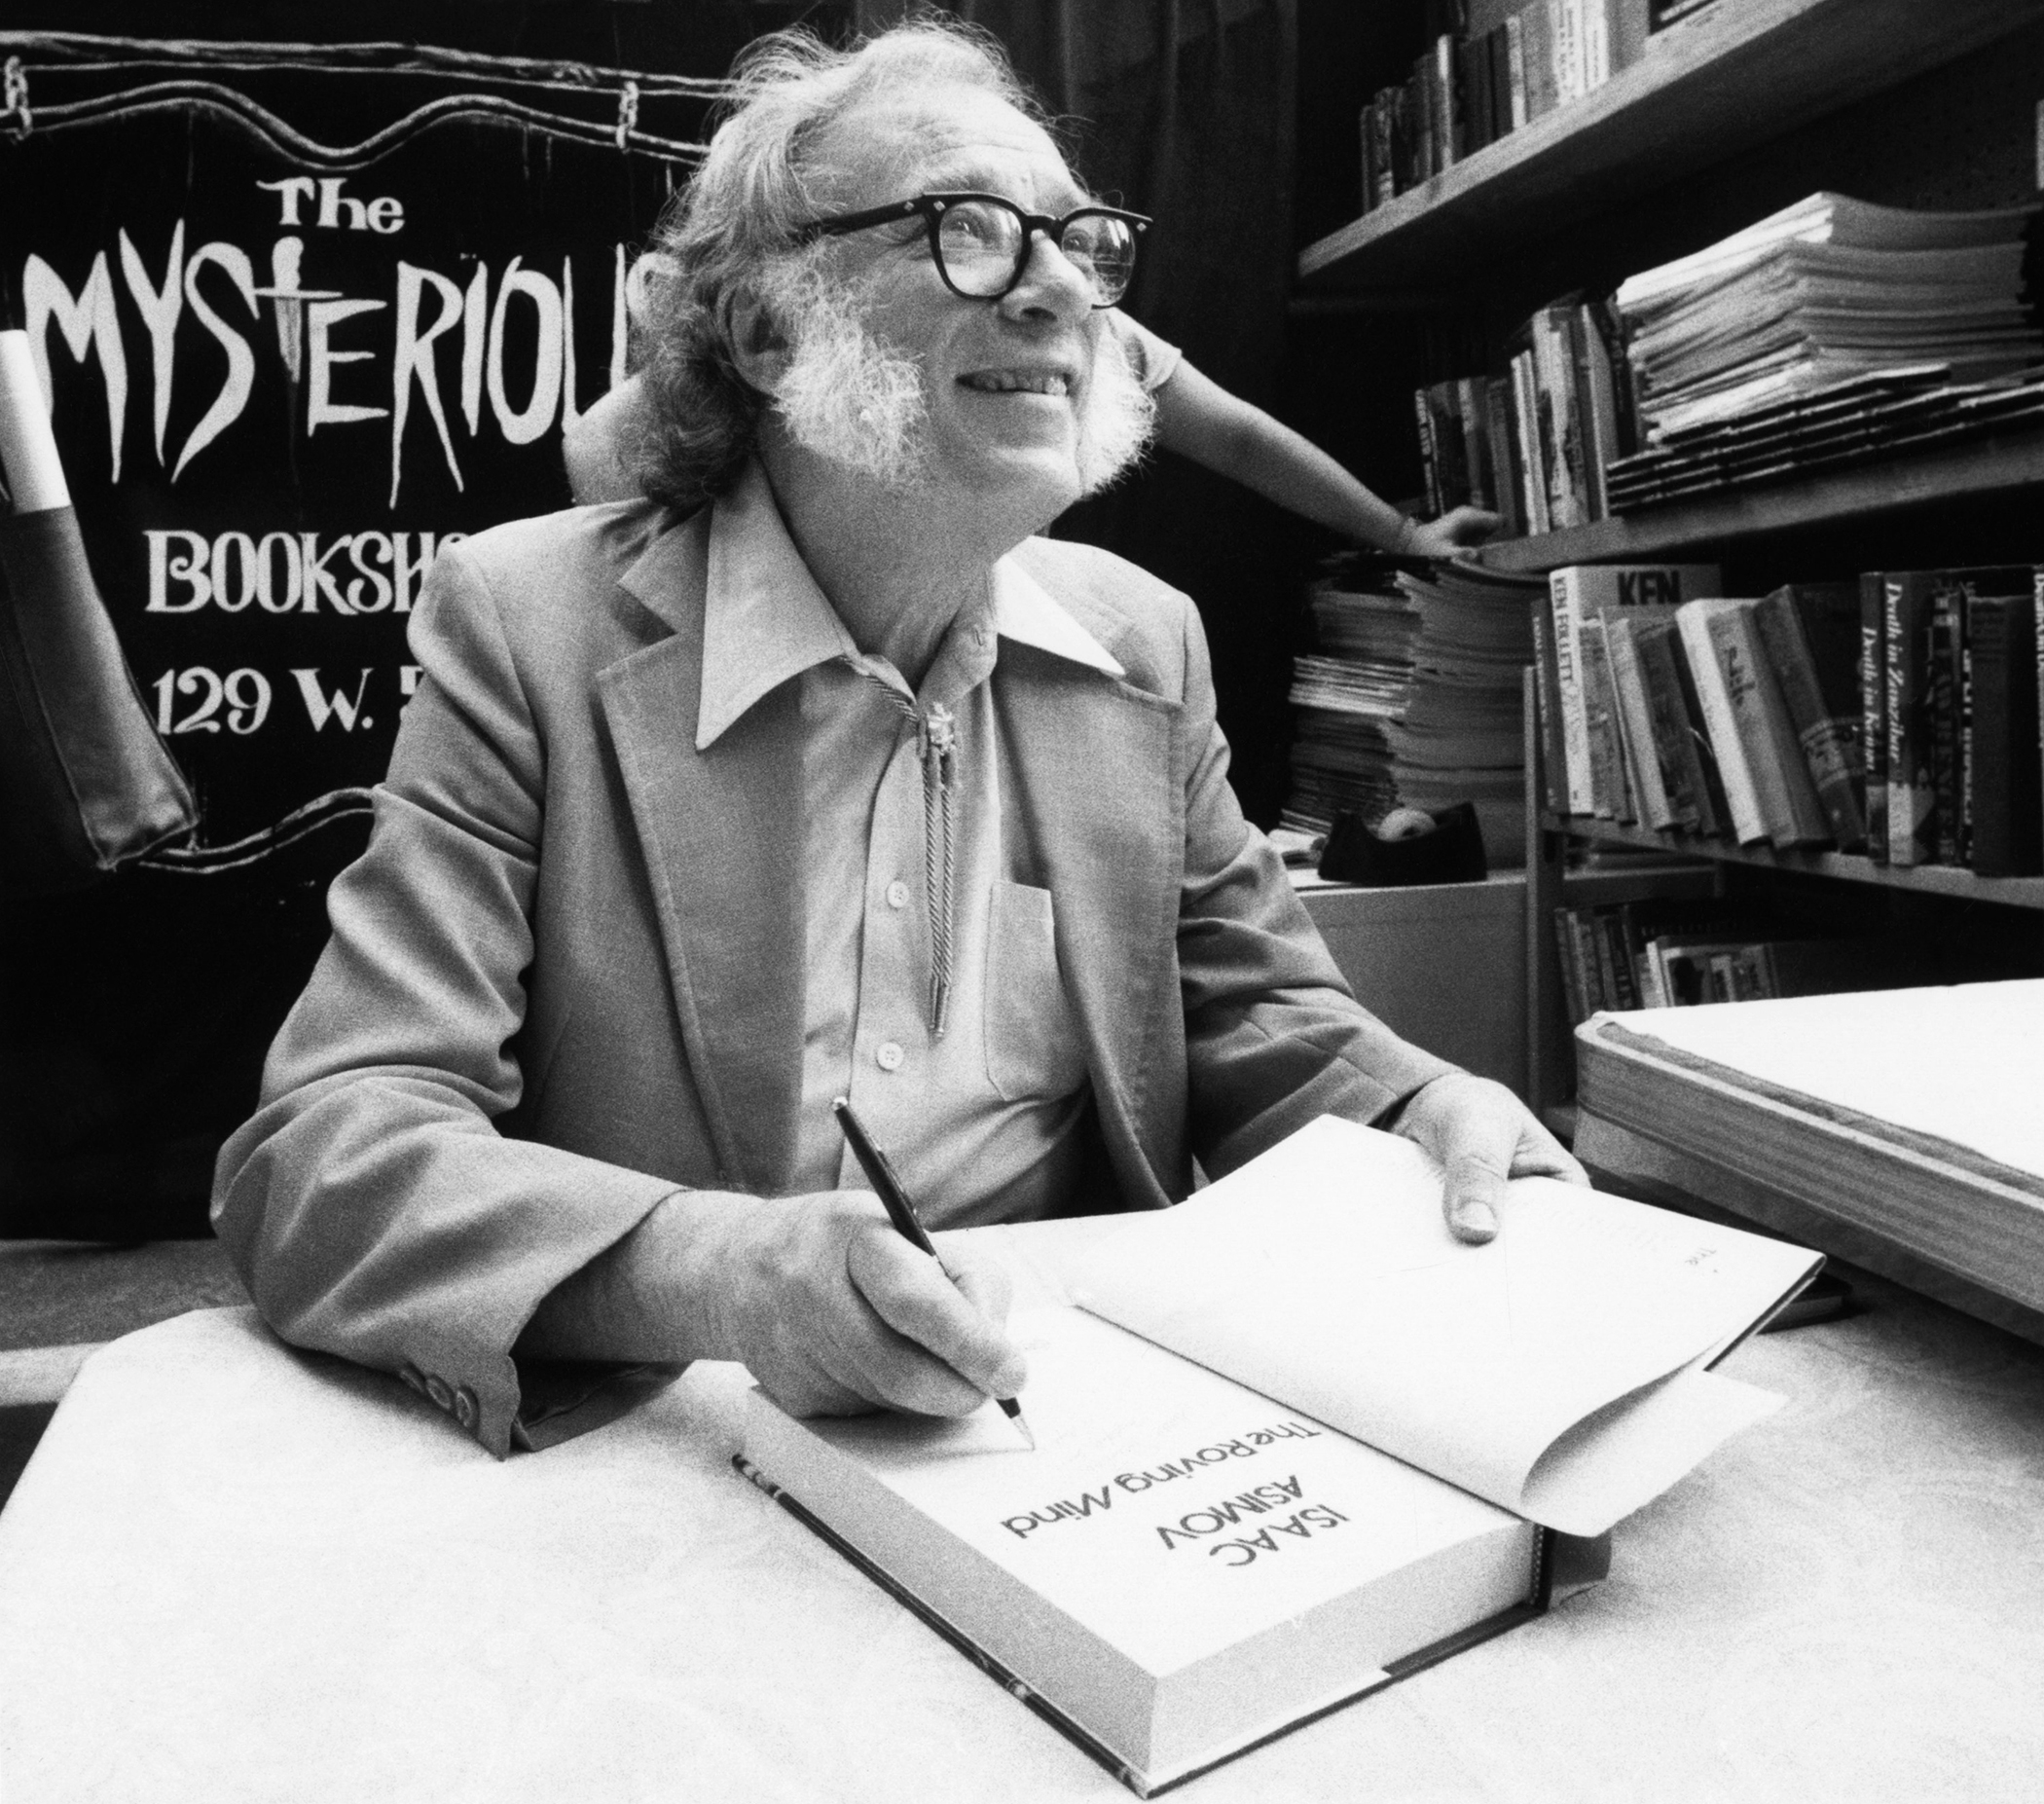 Author Isaac Asimov autographs books at the Mysterious Book Store stall on February 2, 1984 during the Fifth Avenue Book Fair held in New York City, United States.